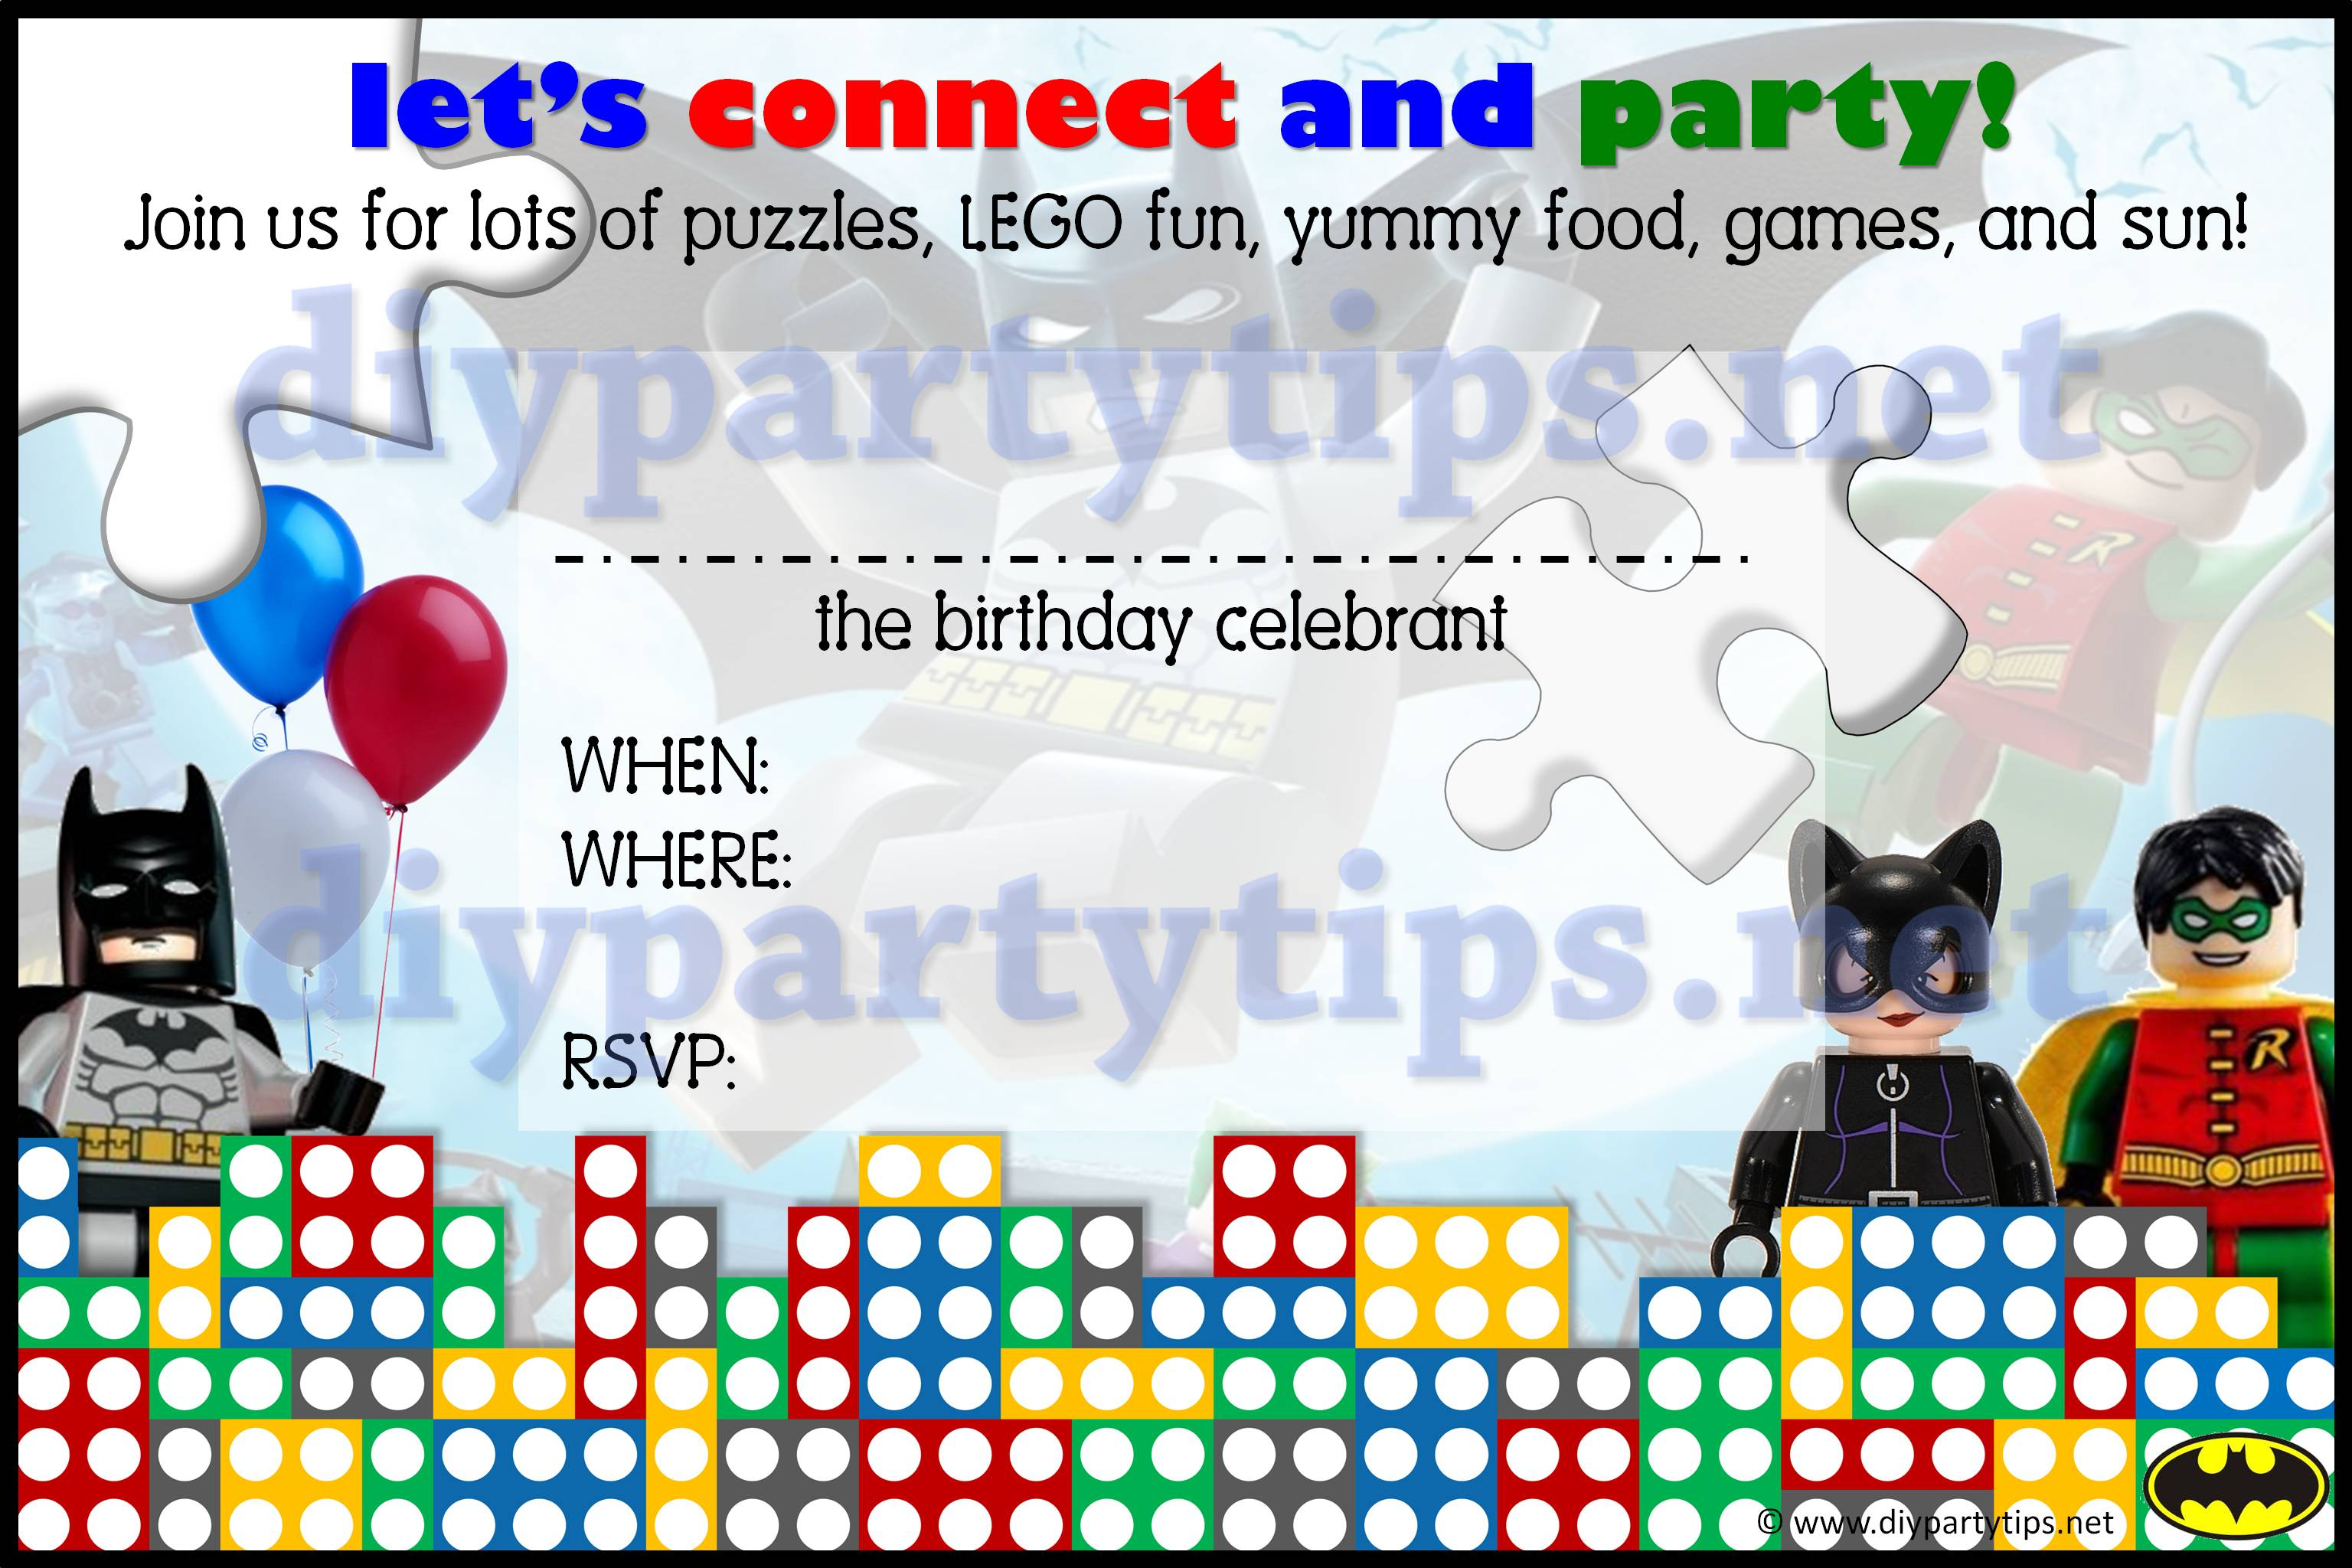 FREE PRINTABLE Lego Party Invitation Lolas DIY Party Tips – Lego Party Invitations Printable